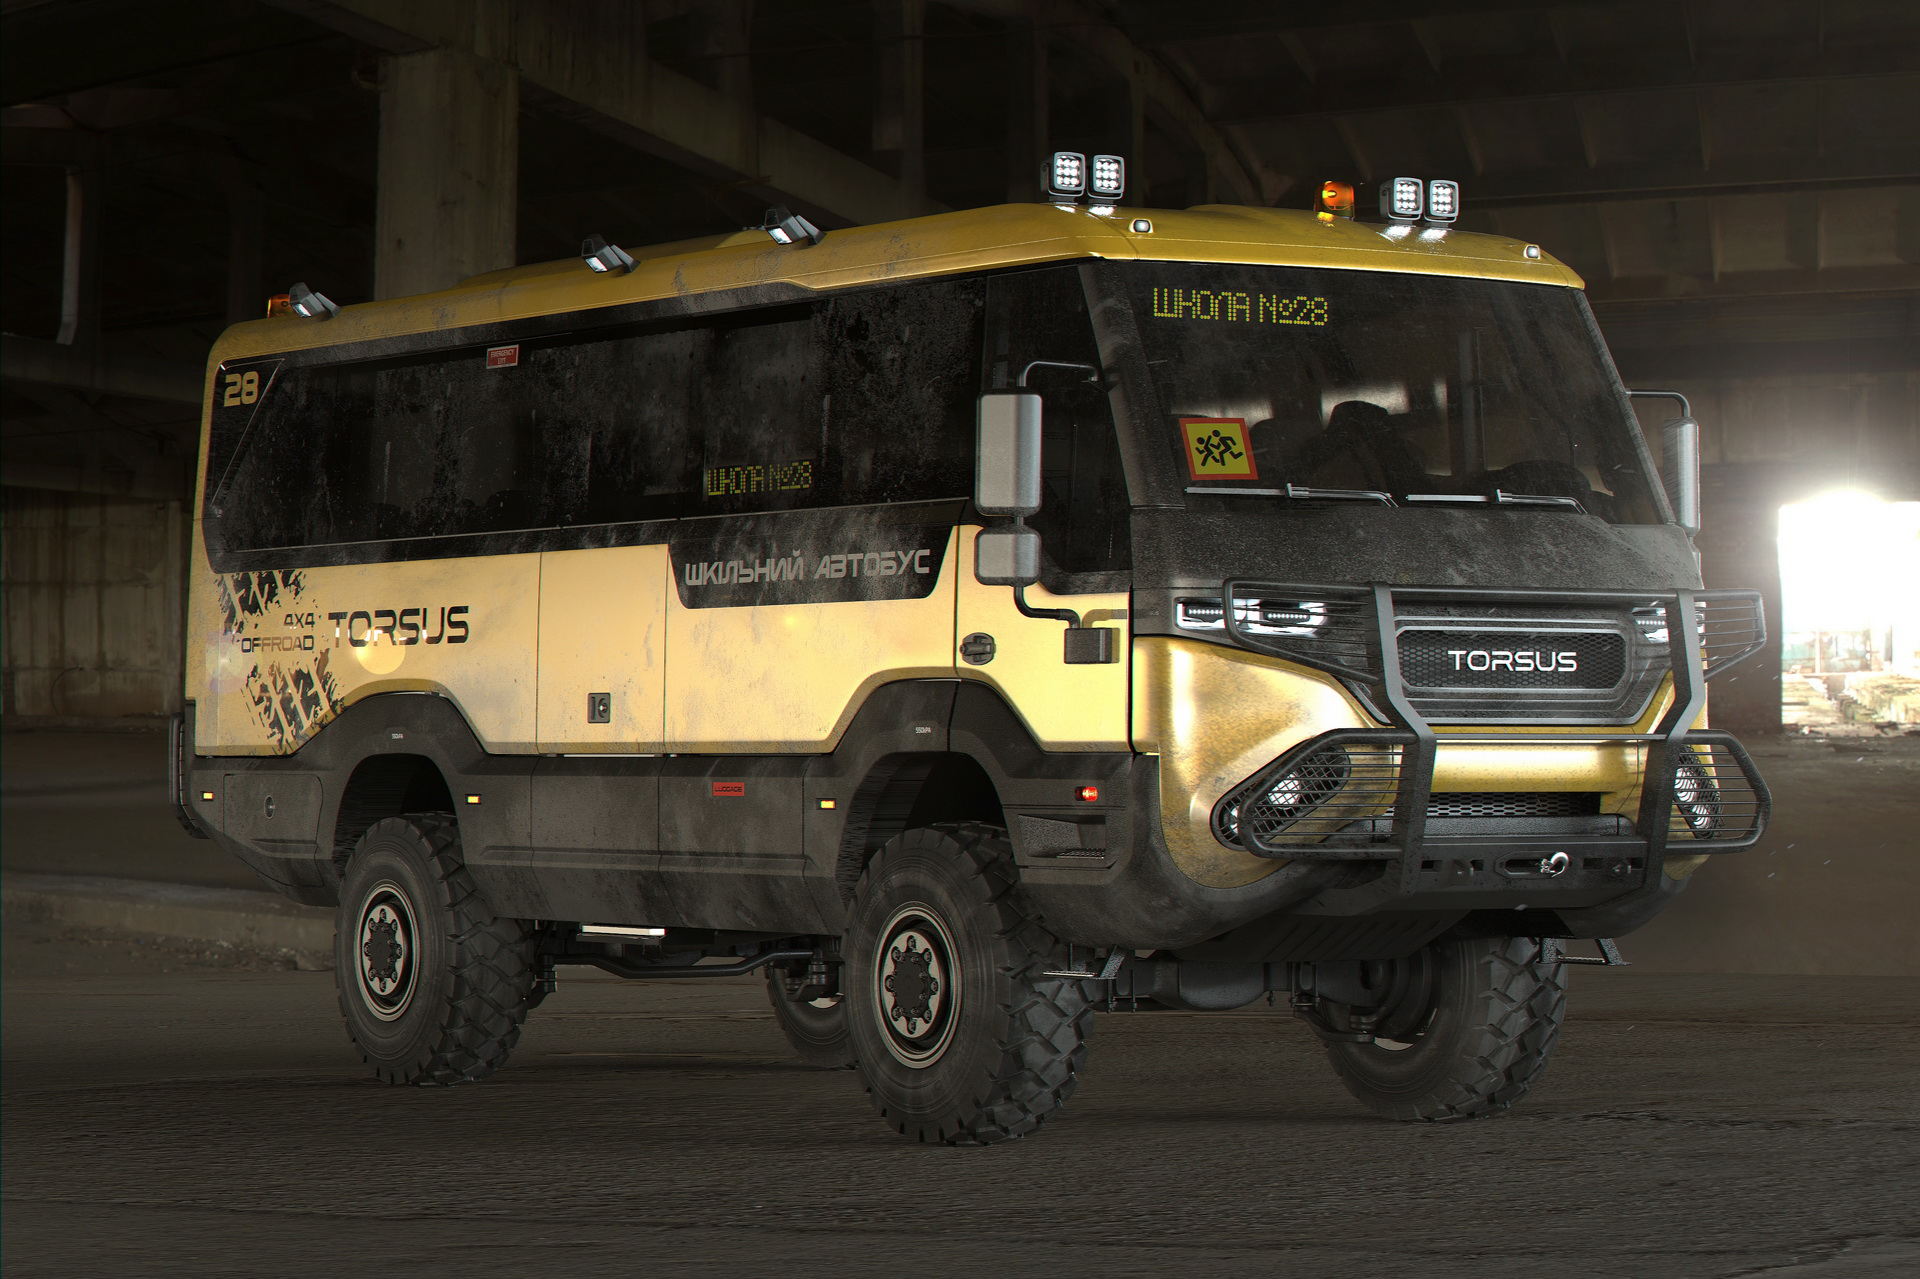 Czech automaker Torsus announced its Praetorian vehicle range this spring, promising to release a wide assortment of rugged vans and buses with unsurpassed off-road capabilities. The latest of these is a school bus seemingly capable of surviving an apocalypse.